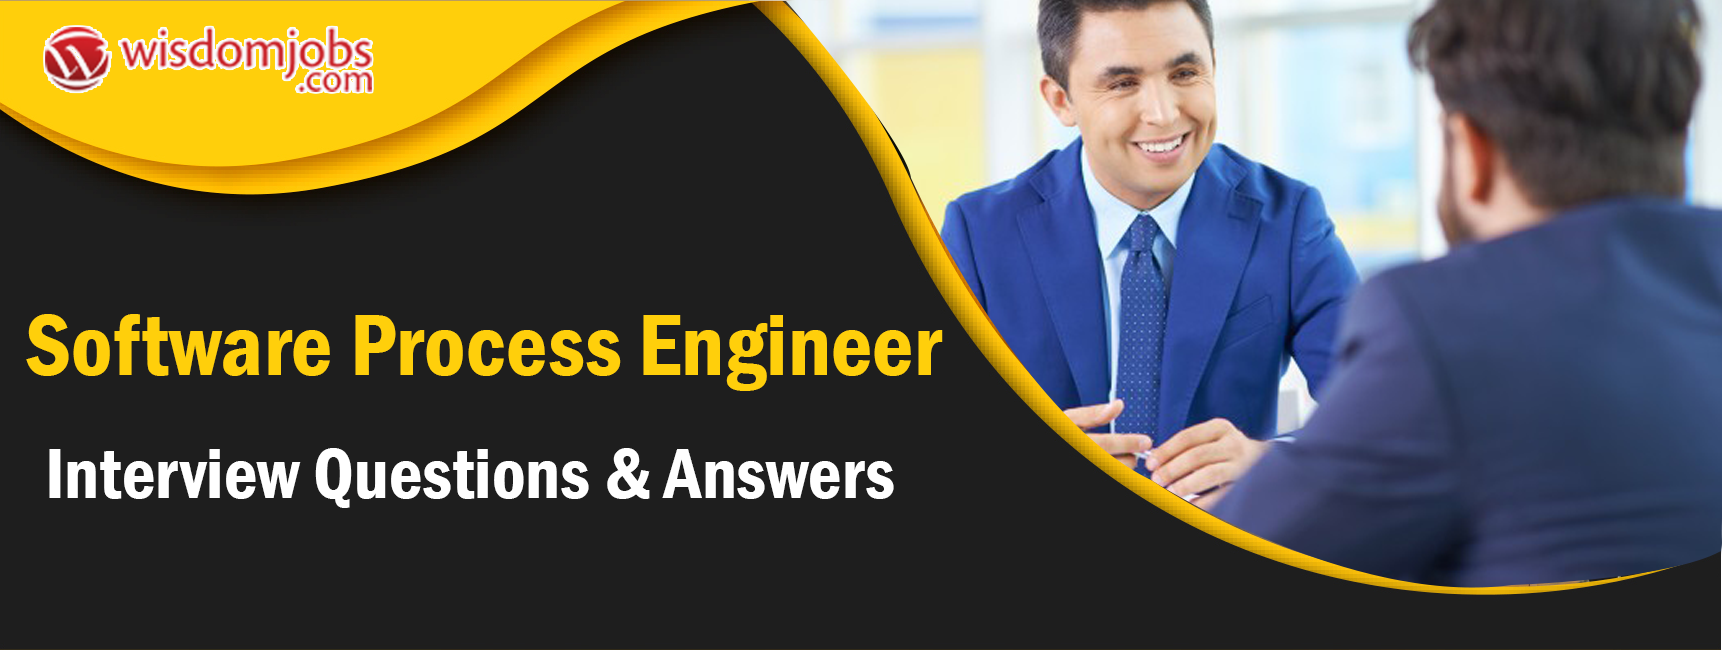 Software Process Engineer Interview Questions & Answers